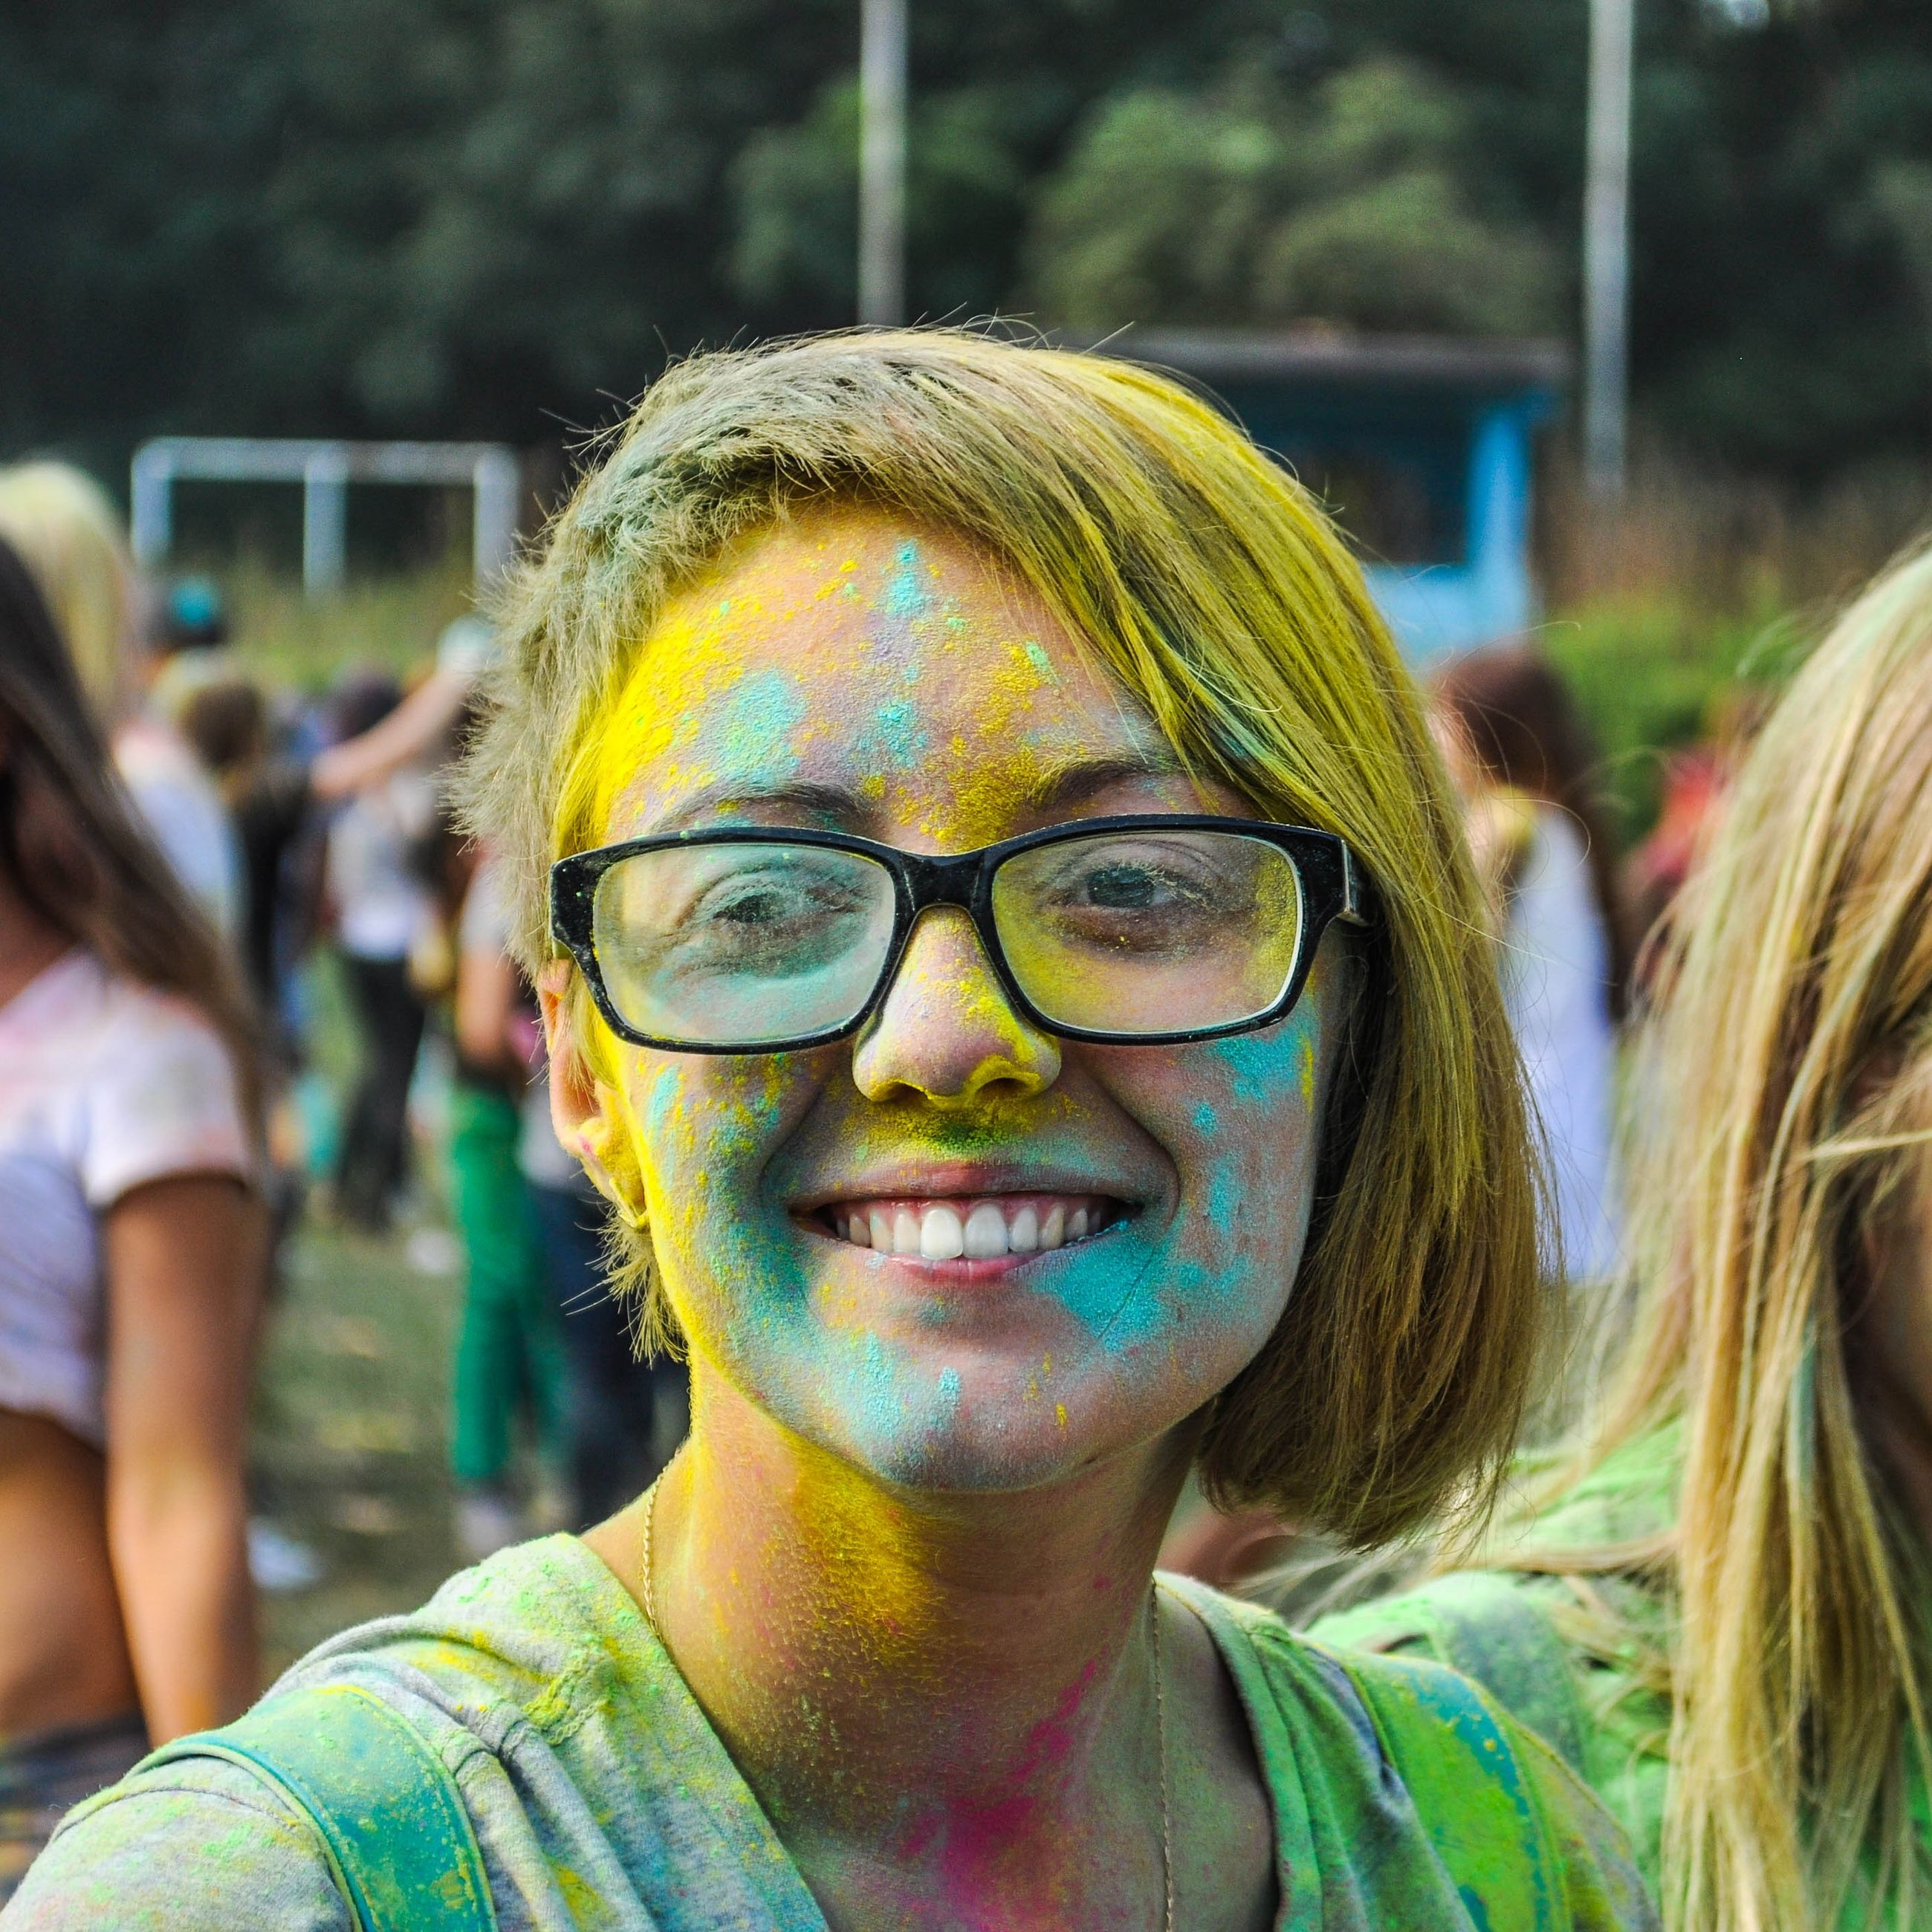 portrait, looking at camera, headshot, focus on foreground, front view, person, close-up, lifestyles, head and shoulders, young adult, smiling, leisure activity, sunglasses, happiness, human face, day, outdoors, incidental people